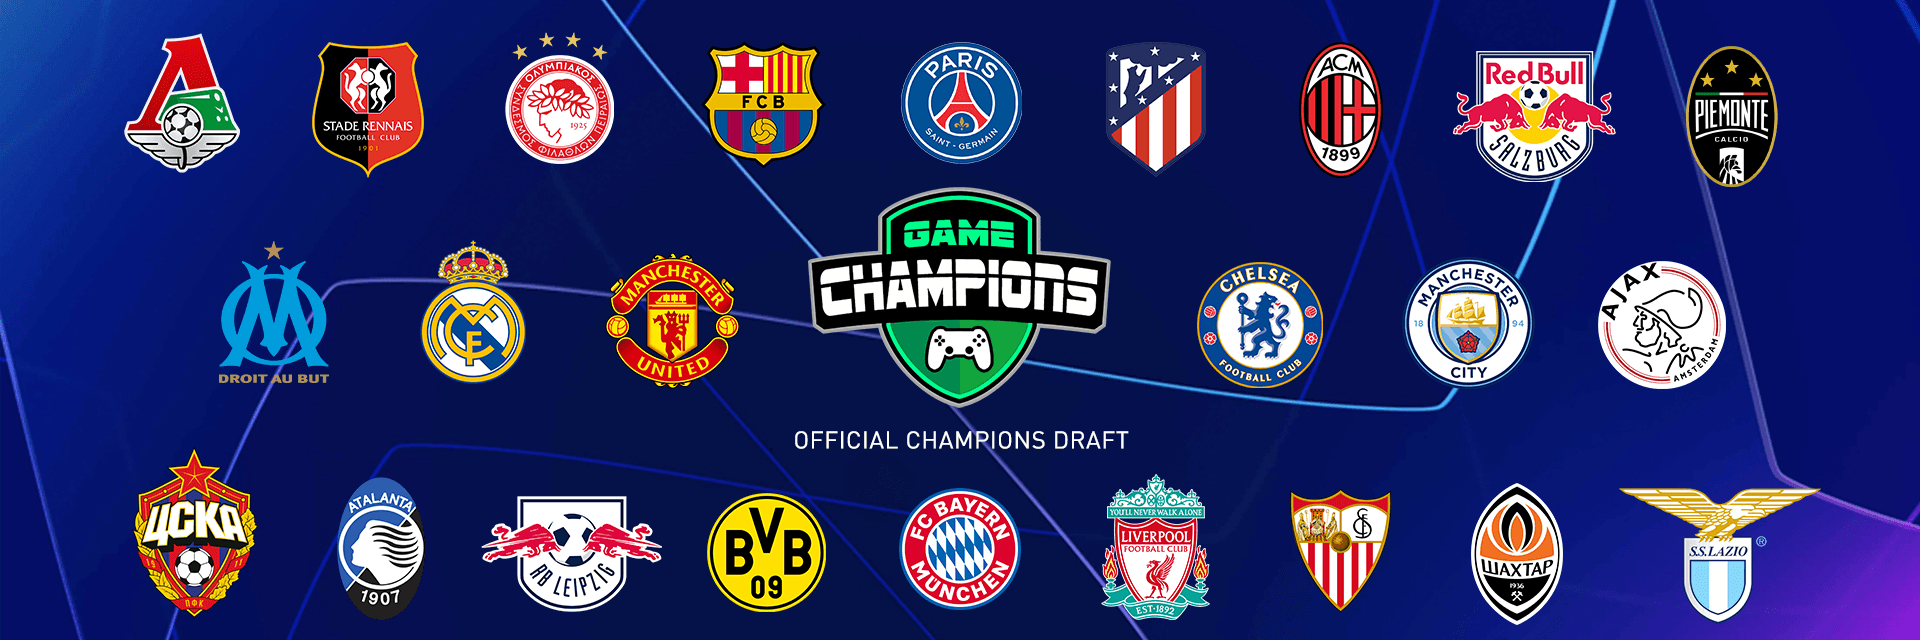 Champions-Draft-Banner.png